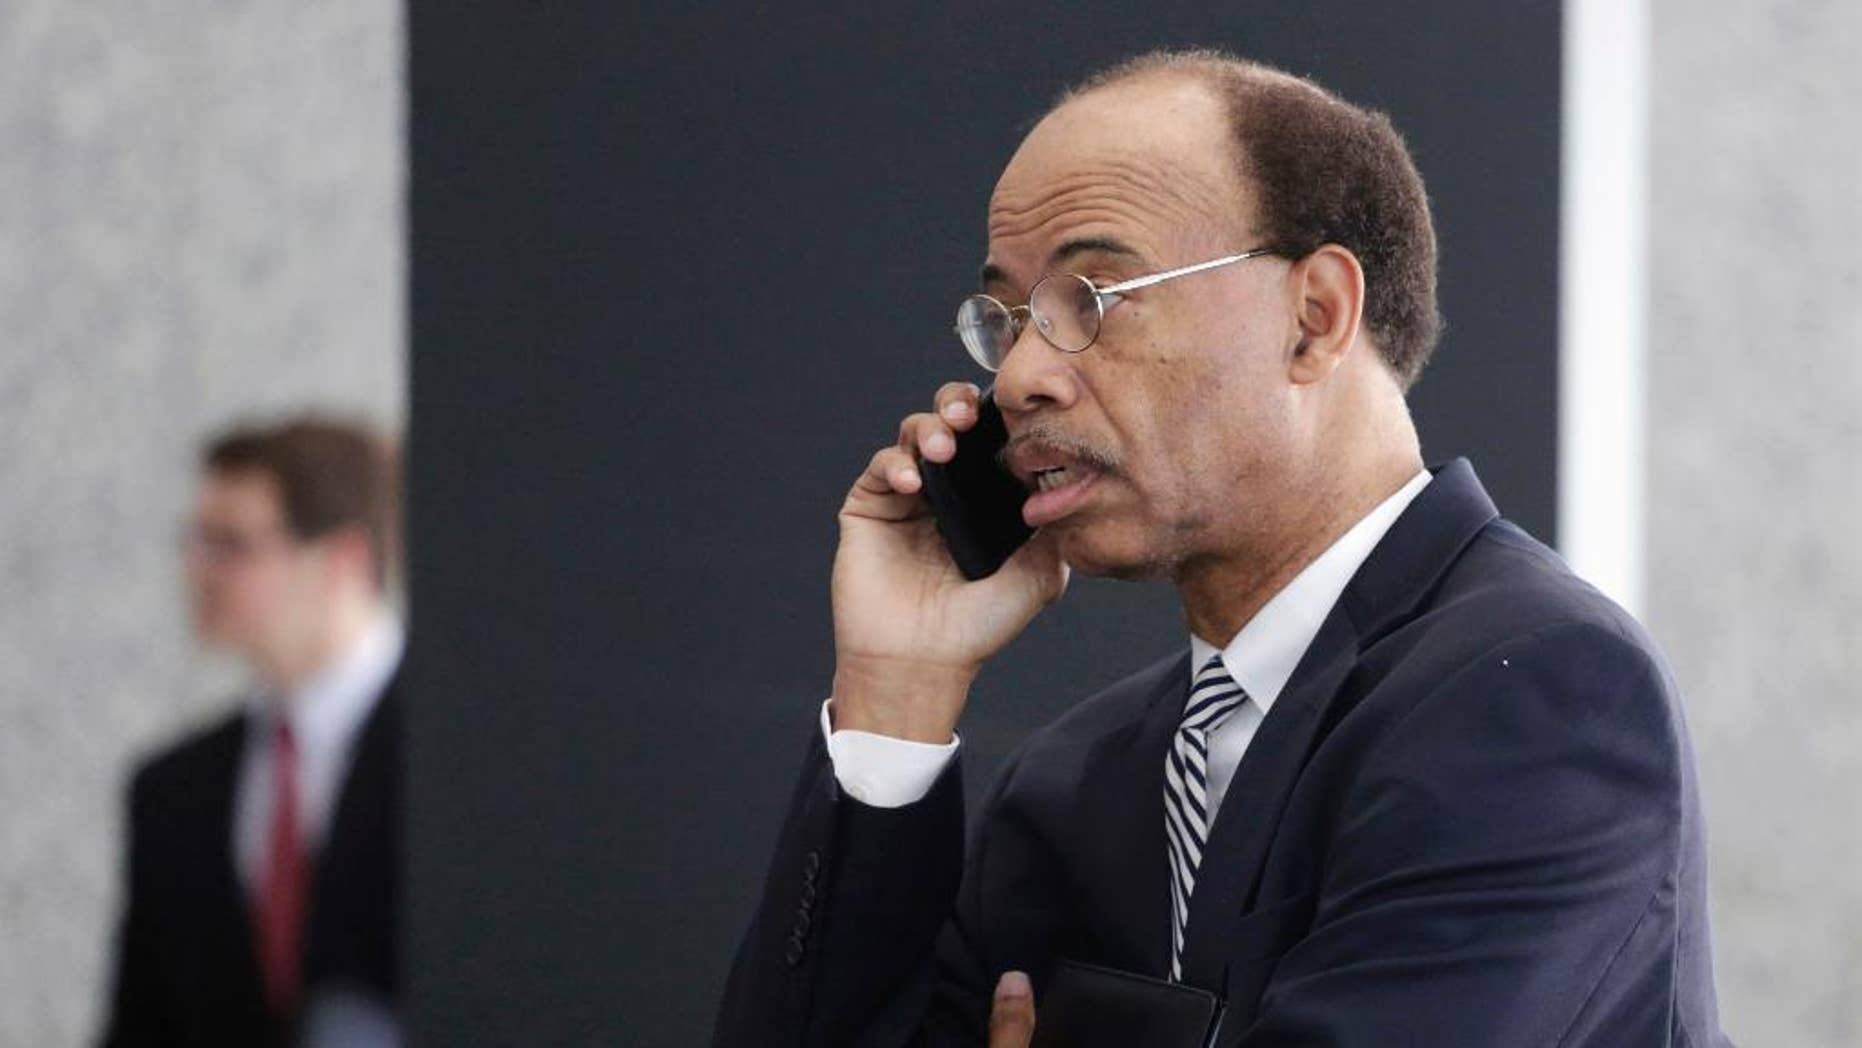 Former Illinois Congressman Mel Reynolds talks on his cell phone as he leaves federal court in Chicago, Thursday, July 30, 2015, after pleading not guilty to federal tax charges. Reynolds, with no home of his own, is scrambling to find a place to stay after prosecutors told the hearing that restrictions on sexual offenders should apply to the Chicago Democrat. Reynold's resigned from Congress in 1995 after being convicted of statutory rape. The housing issues arose when the hearing moved to questions about bond. (AP Photo/M. Spencer Green)